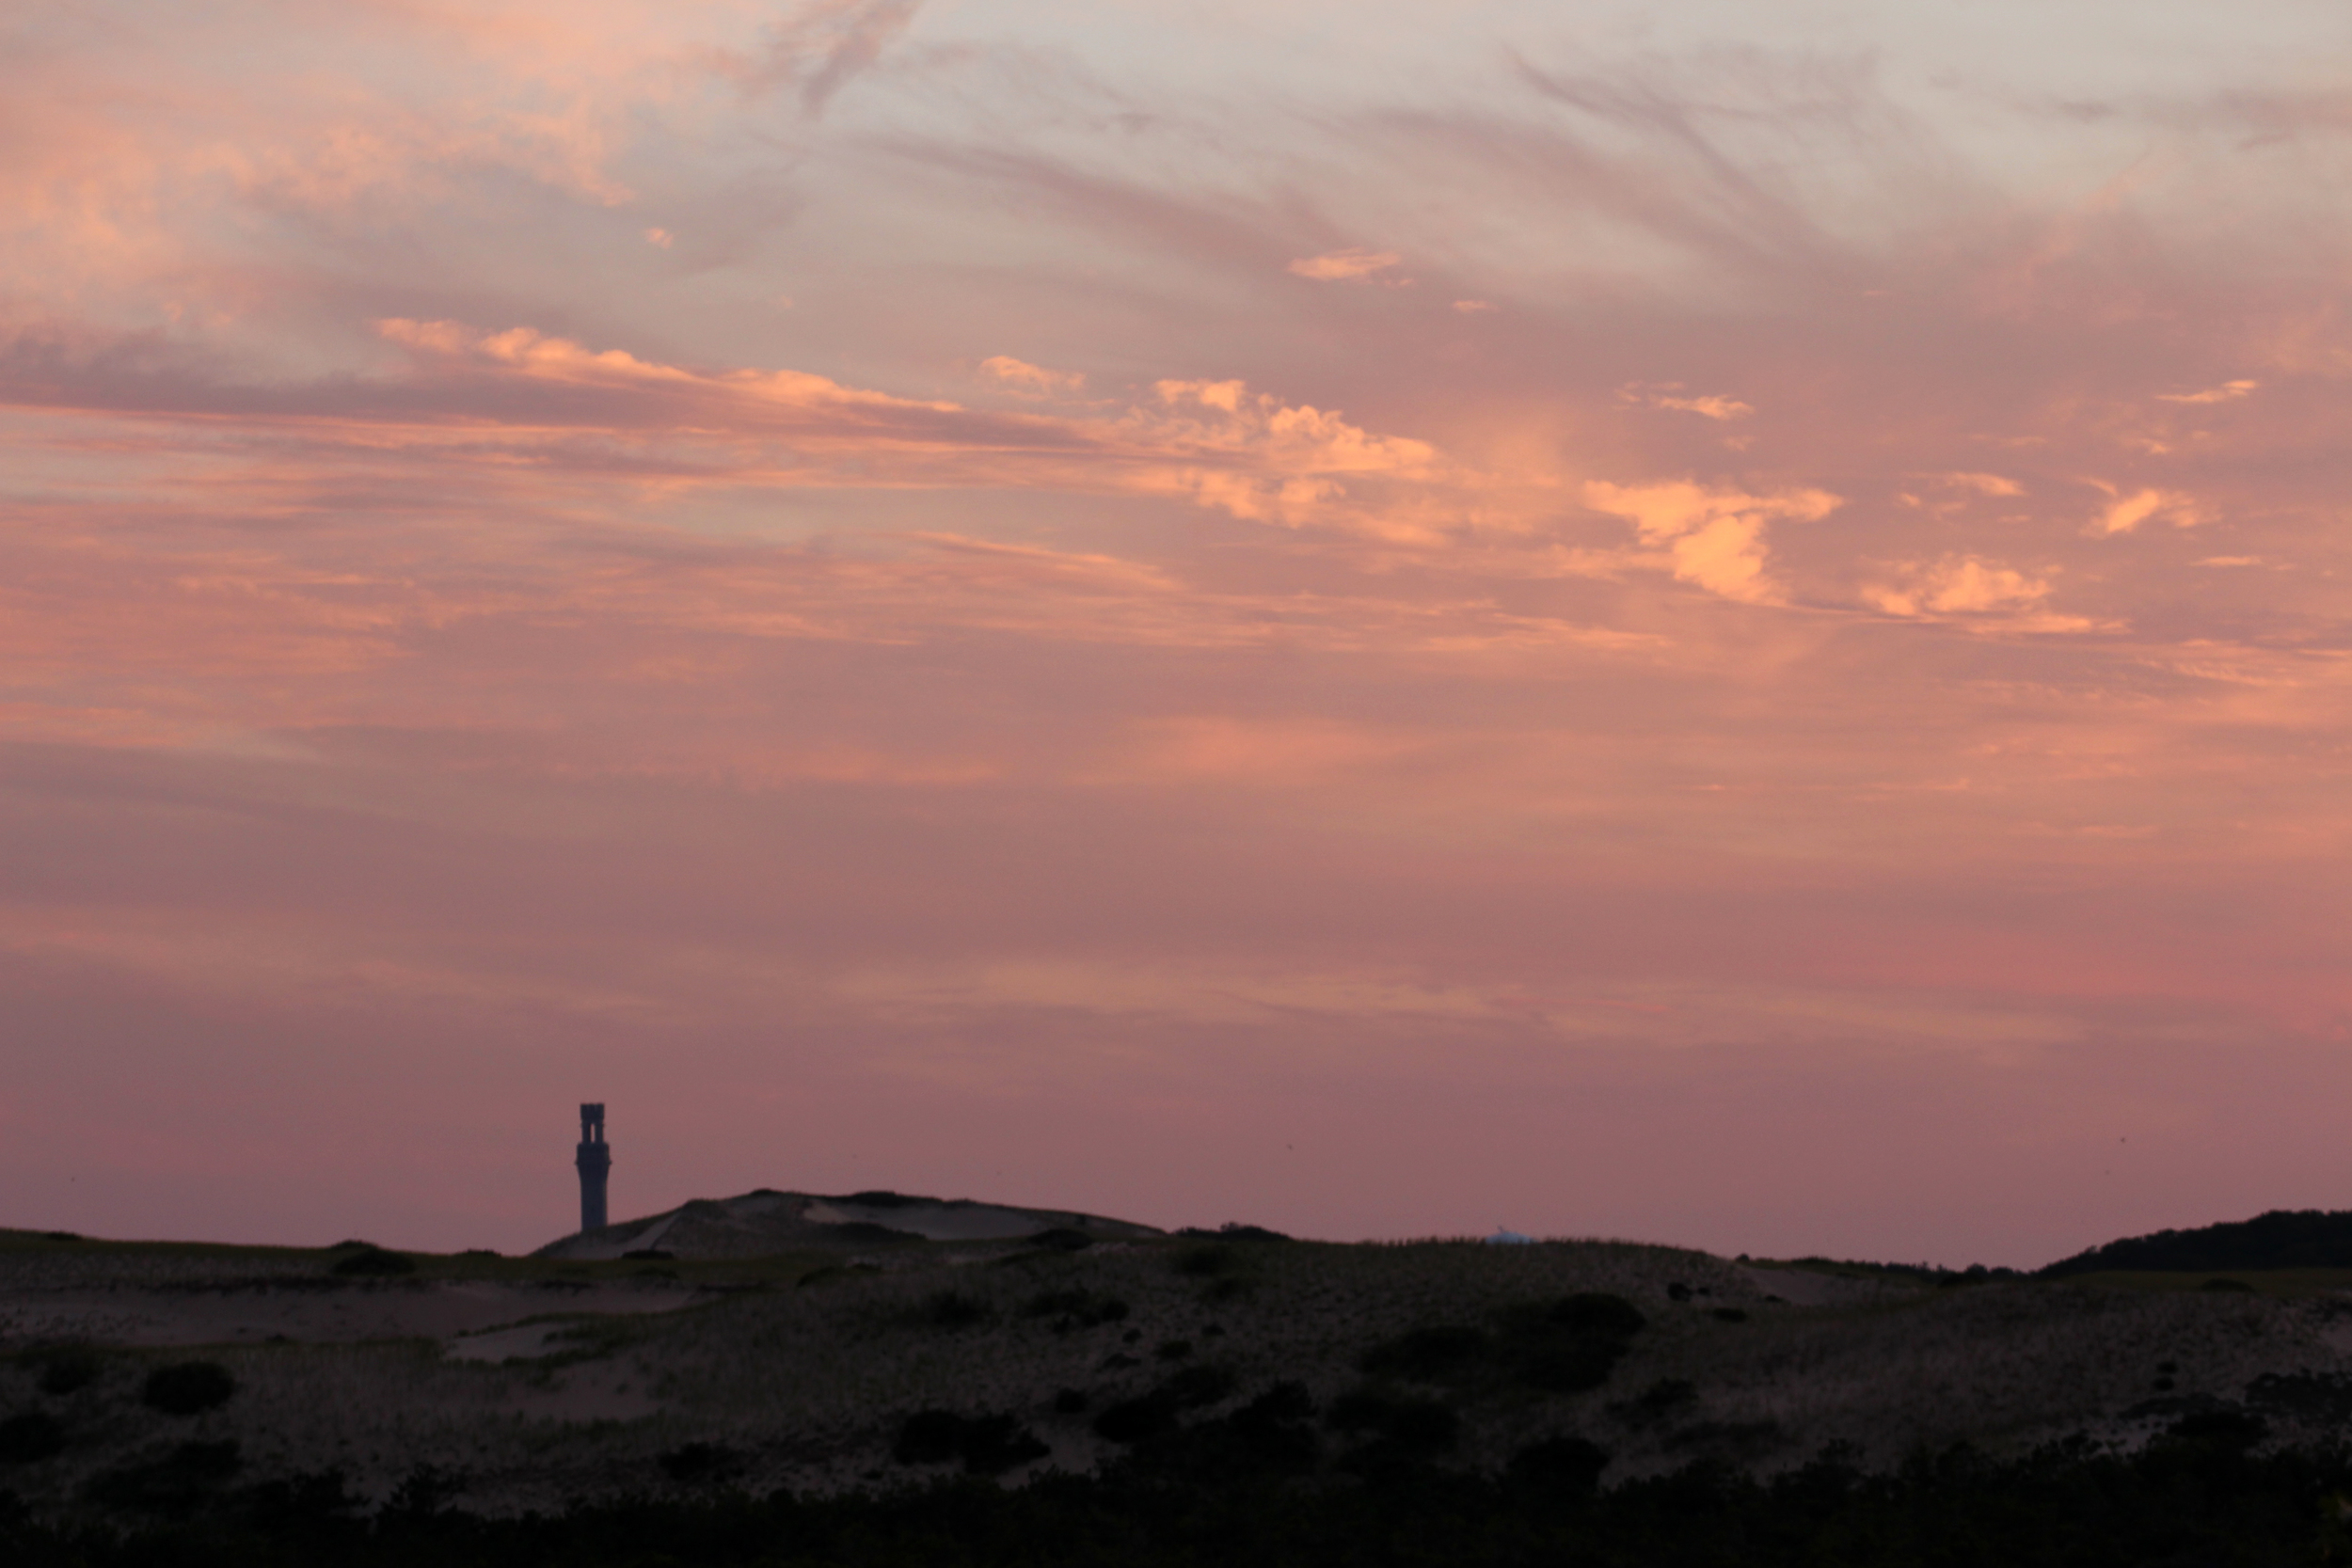 The Pilgrim Monument on the horizon is one of the few reminders of town and life outside the dunes.